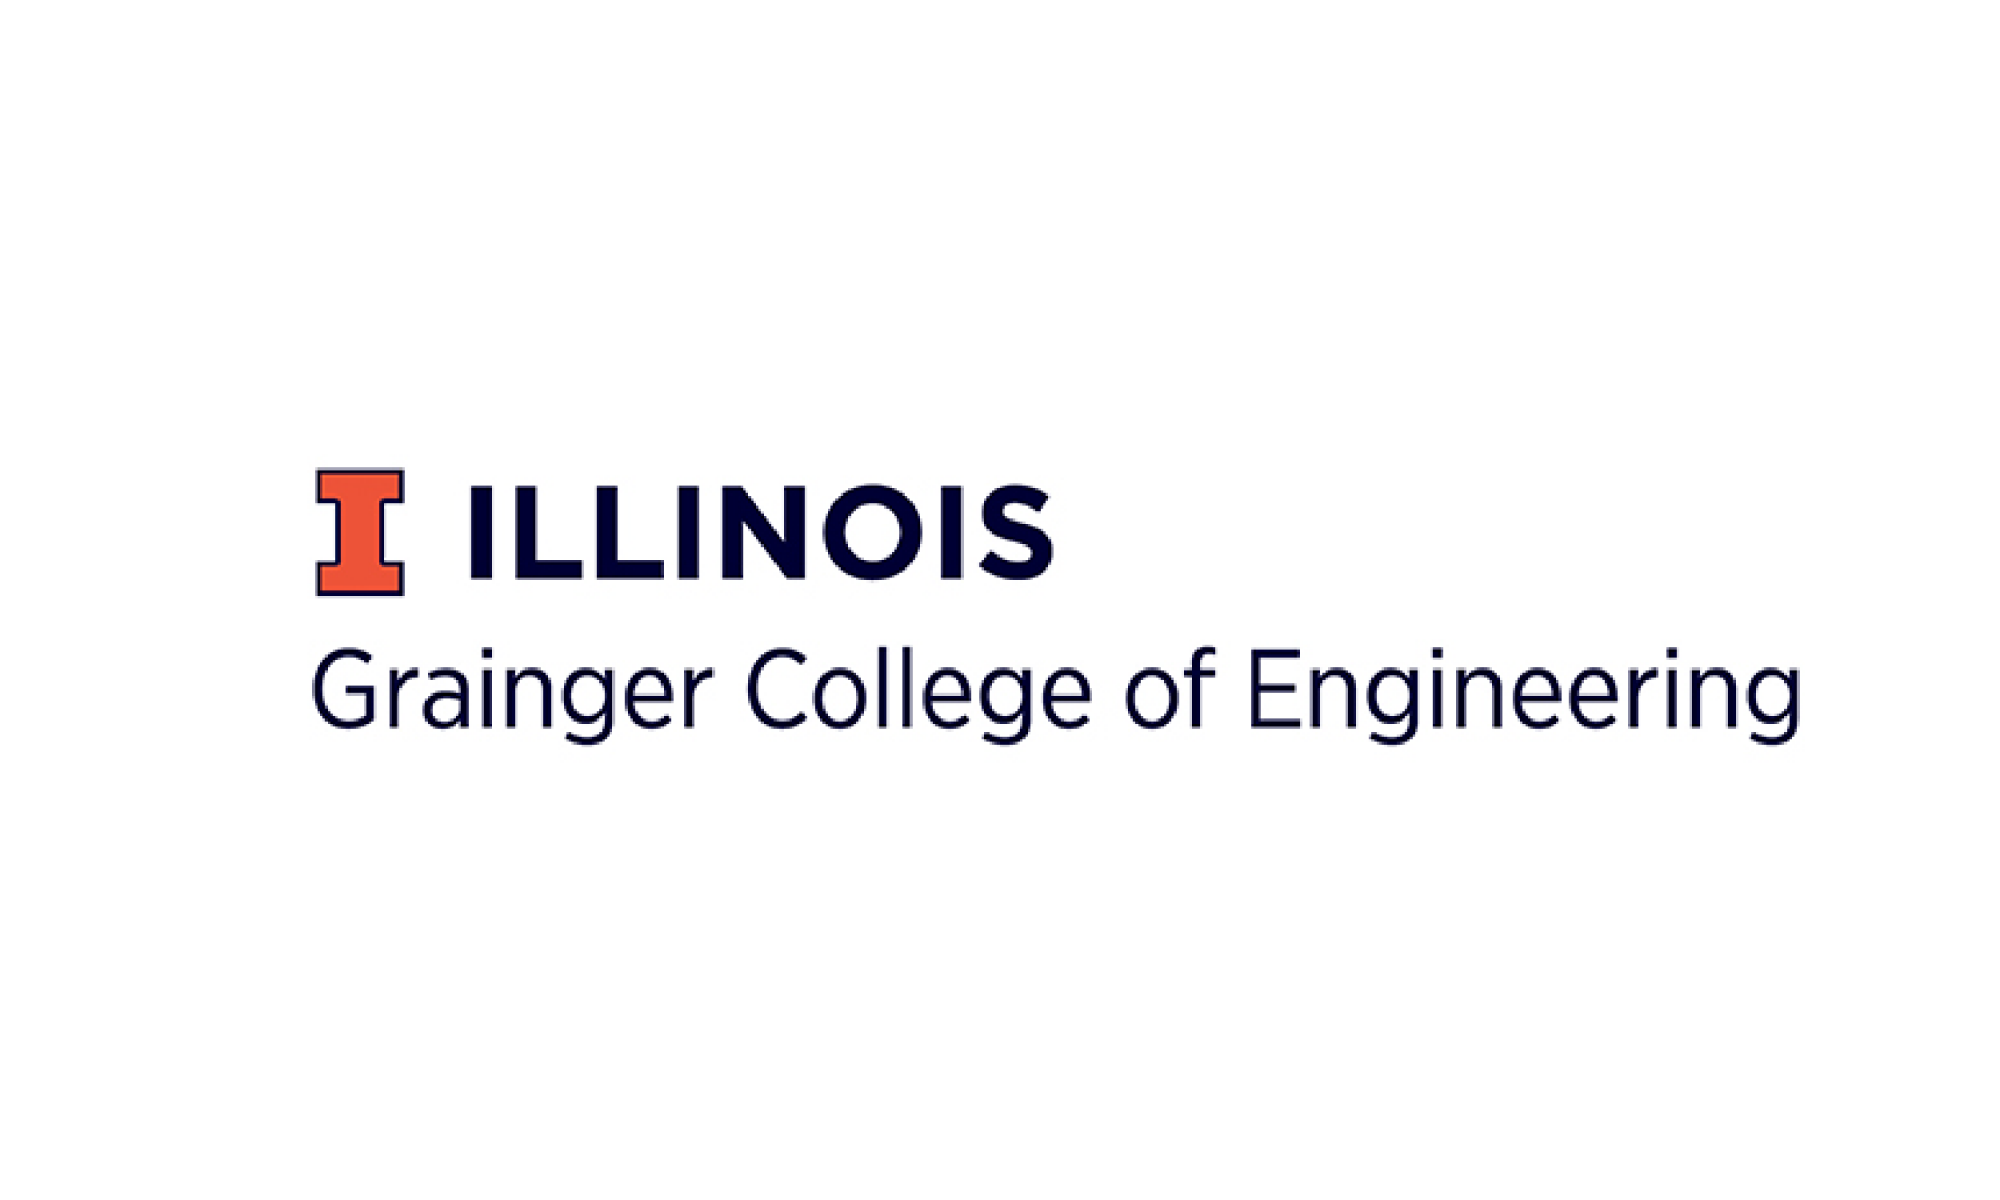 Grainger College of Engineering